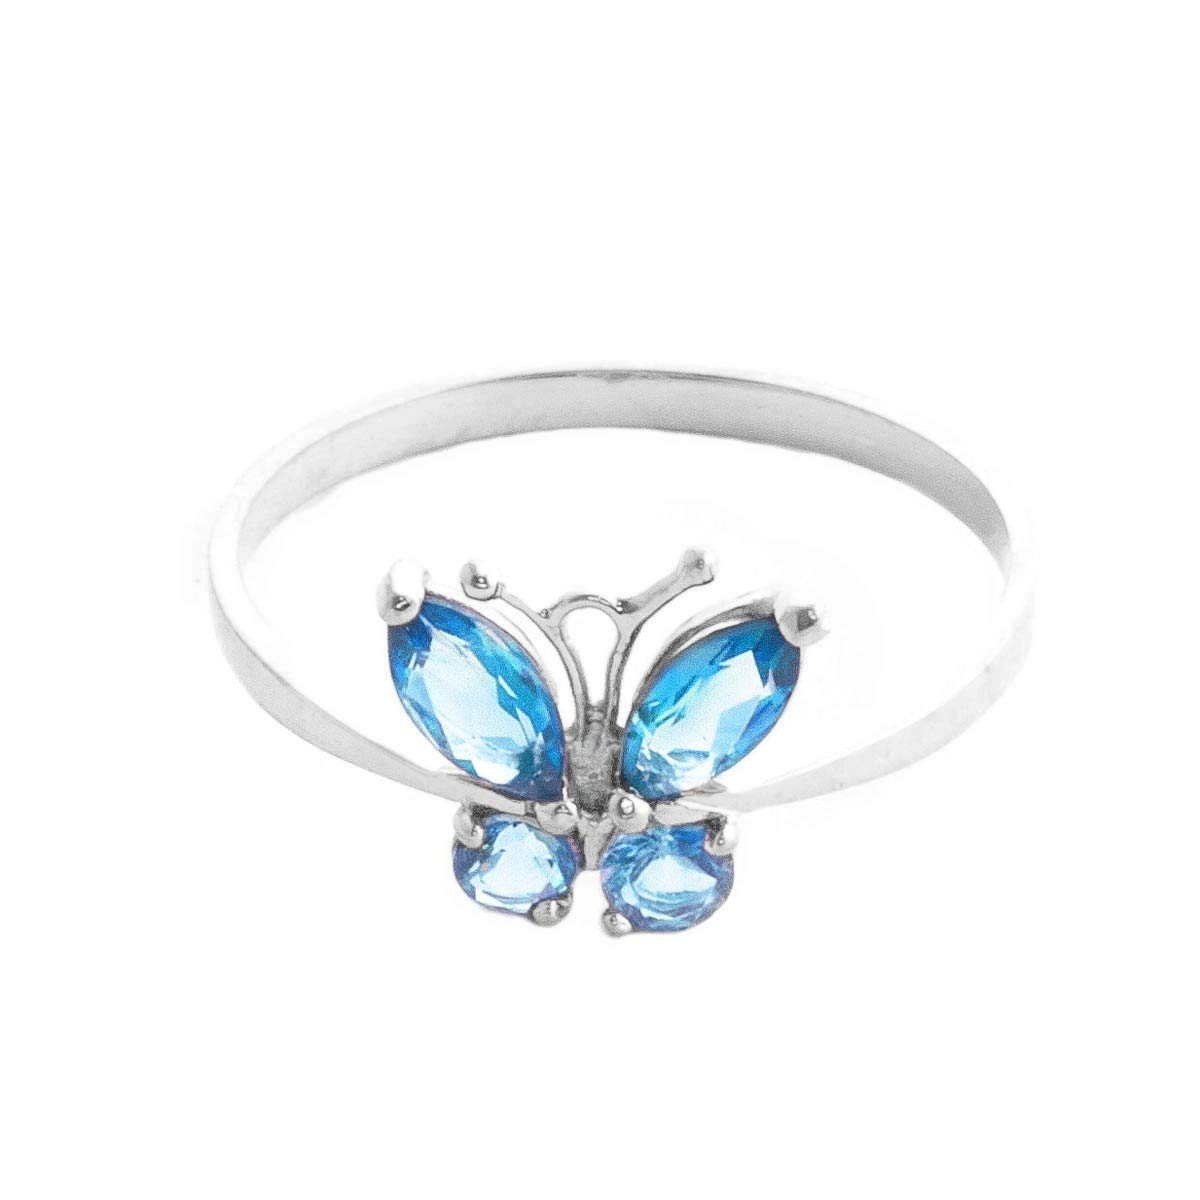 Galaxy Gold High Polished 14k Solid White Gold 0.6 ctw Blue Natural Topaz Butterfly Ring - Size 9.5